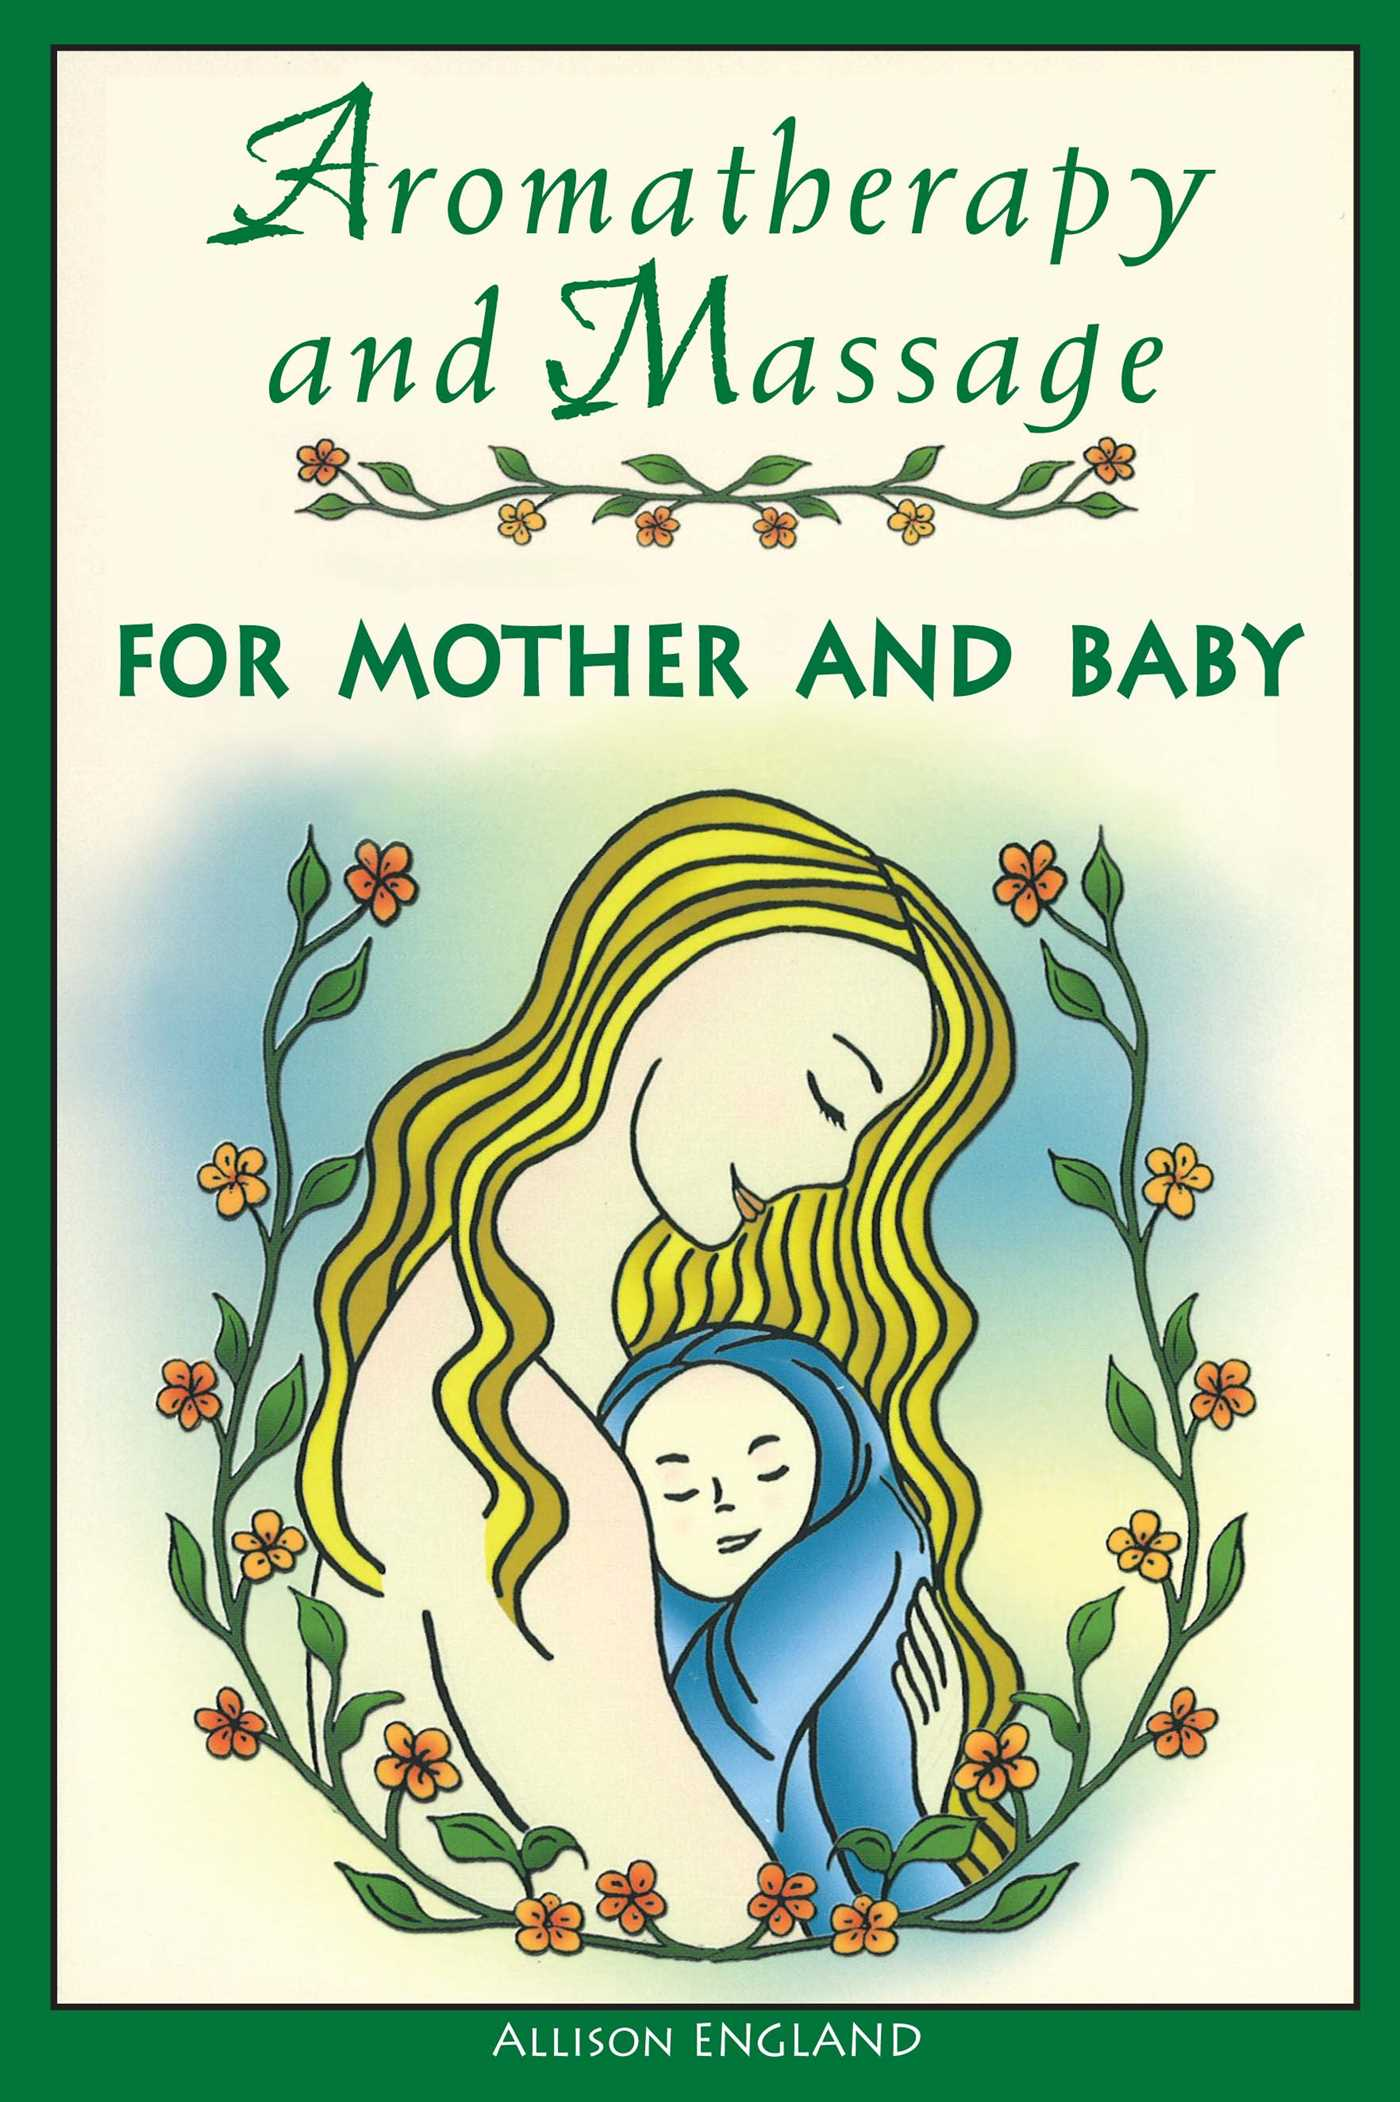 Aromatherapy-and-massage-for-mother-and-baby-9780892818983_hr